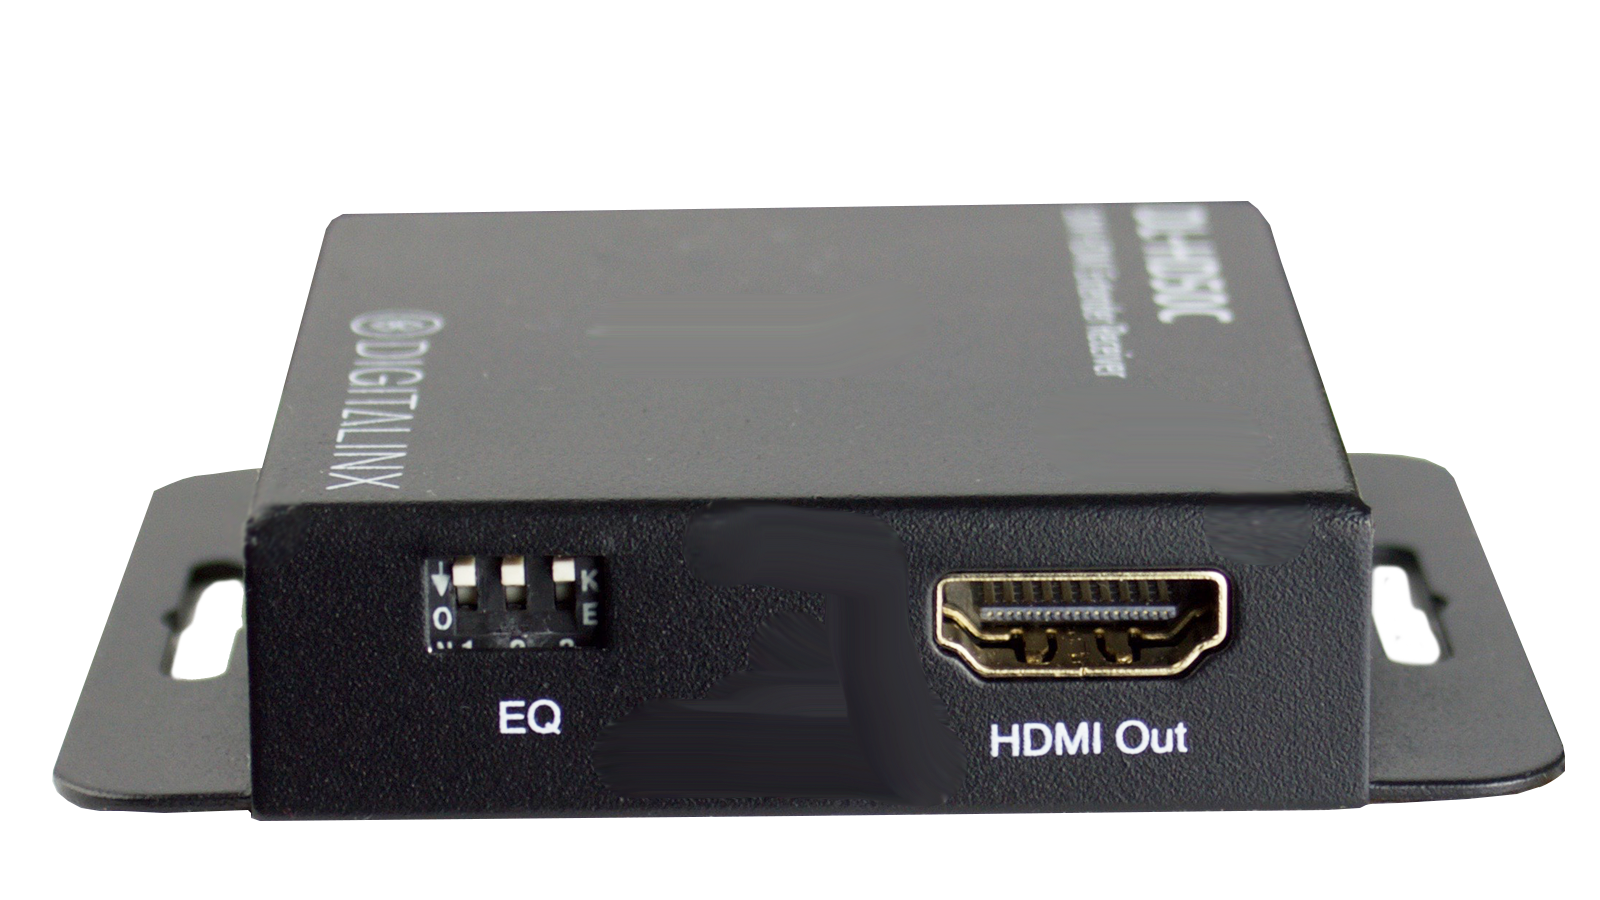 Dl Hd50c Hdmi Over Single Cat 50m 150 Extender Set Equalizers Crossovers Wiring Kits Caps And More Click On Picture To